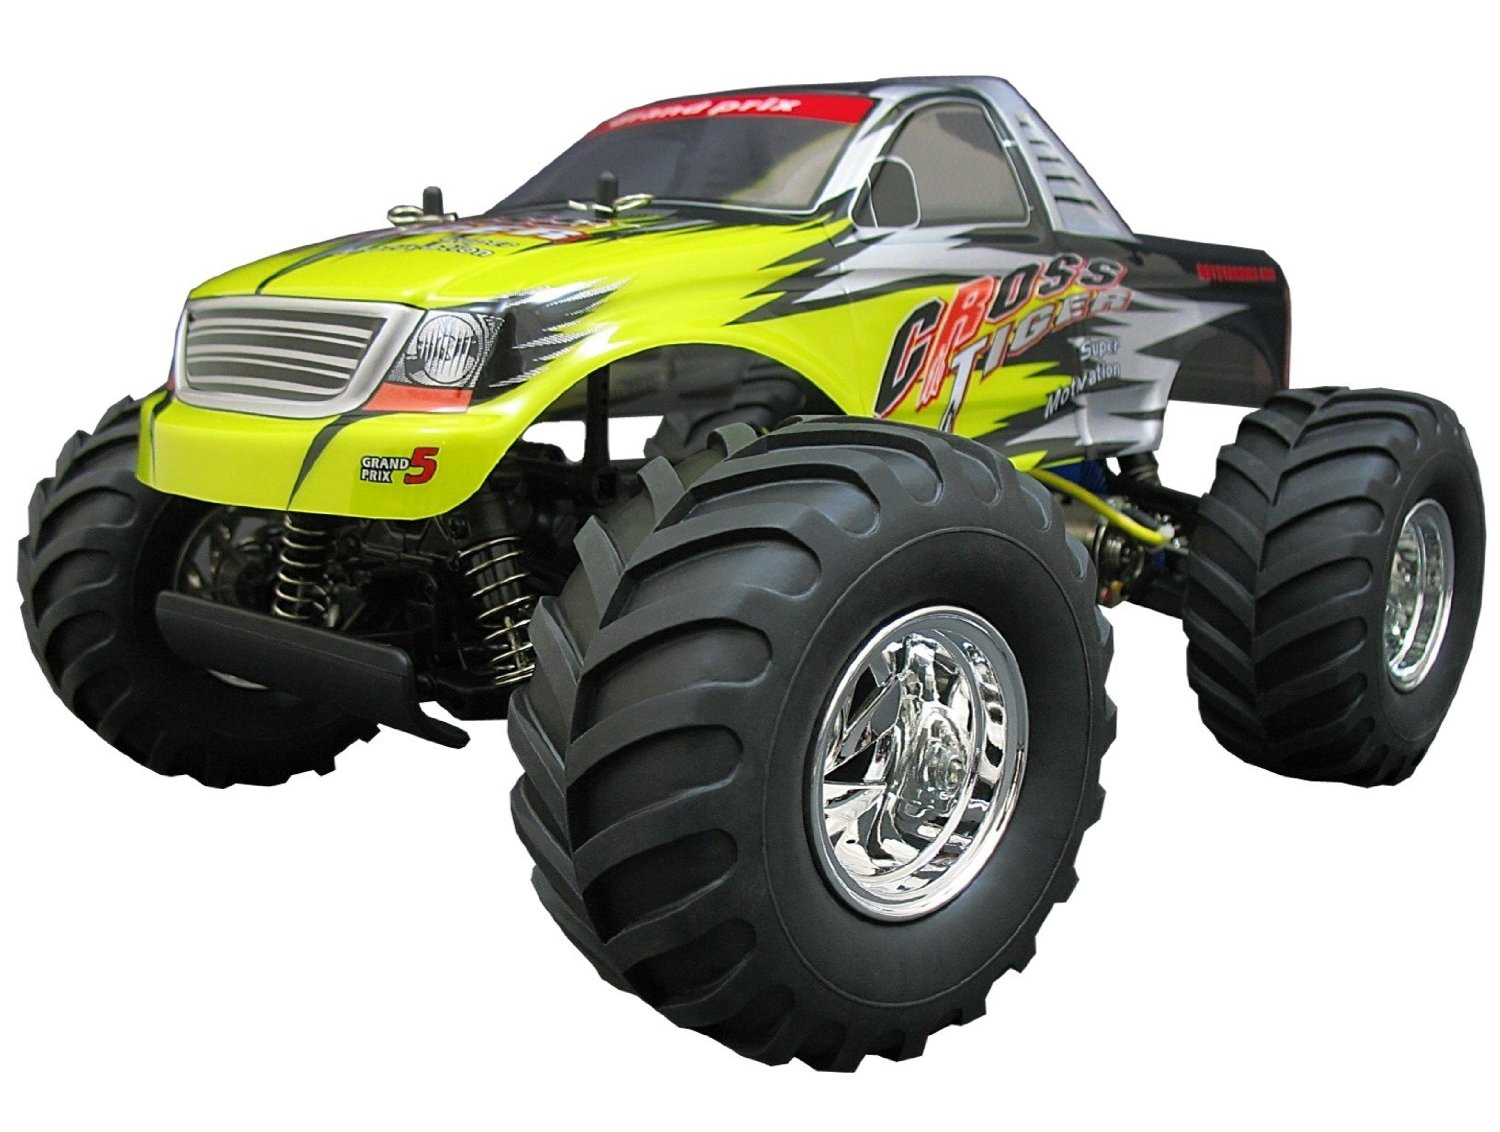 seben rc 1 10 monster truck me2 mk21 560 motor rtr. Black Bedroom Furniture Sets. Home Design Ideas